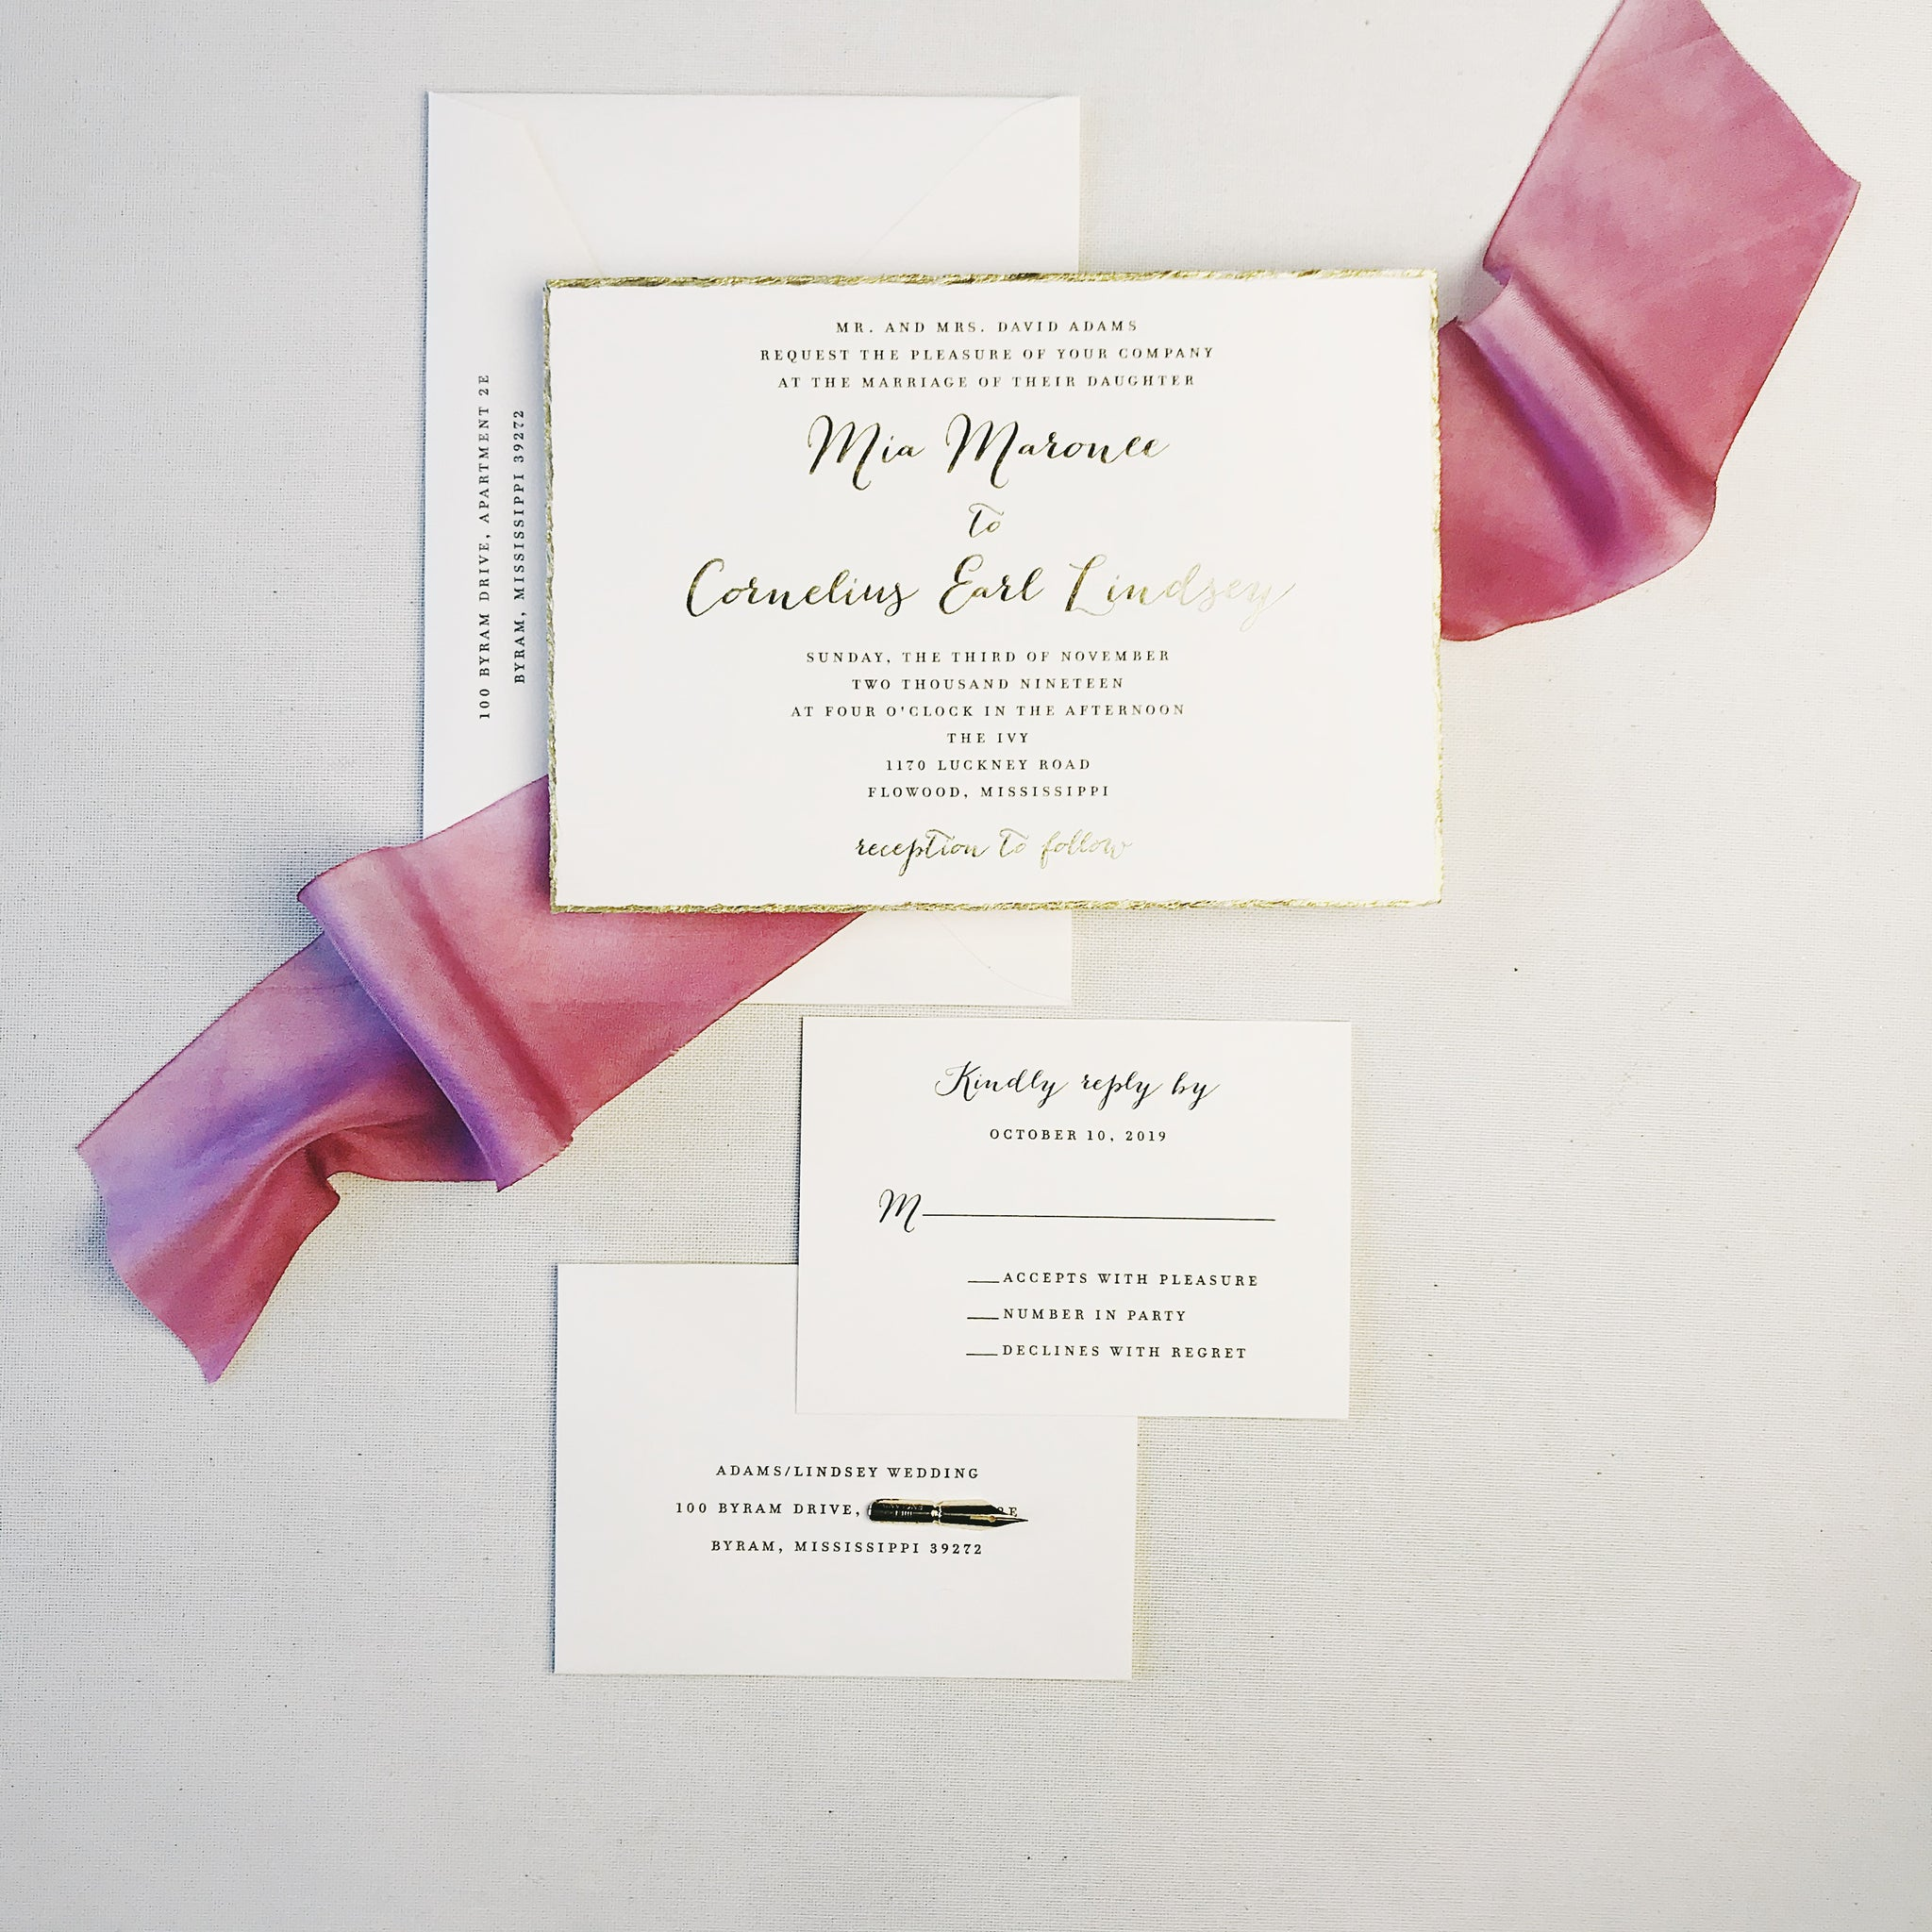 Adams Wedding Invitation - Deposit Listing